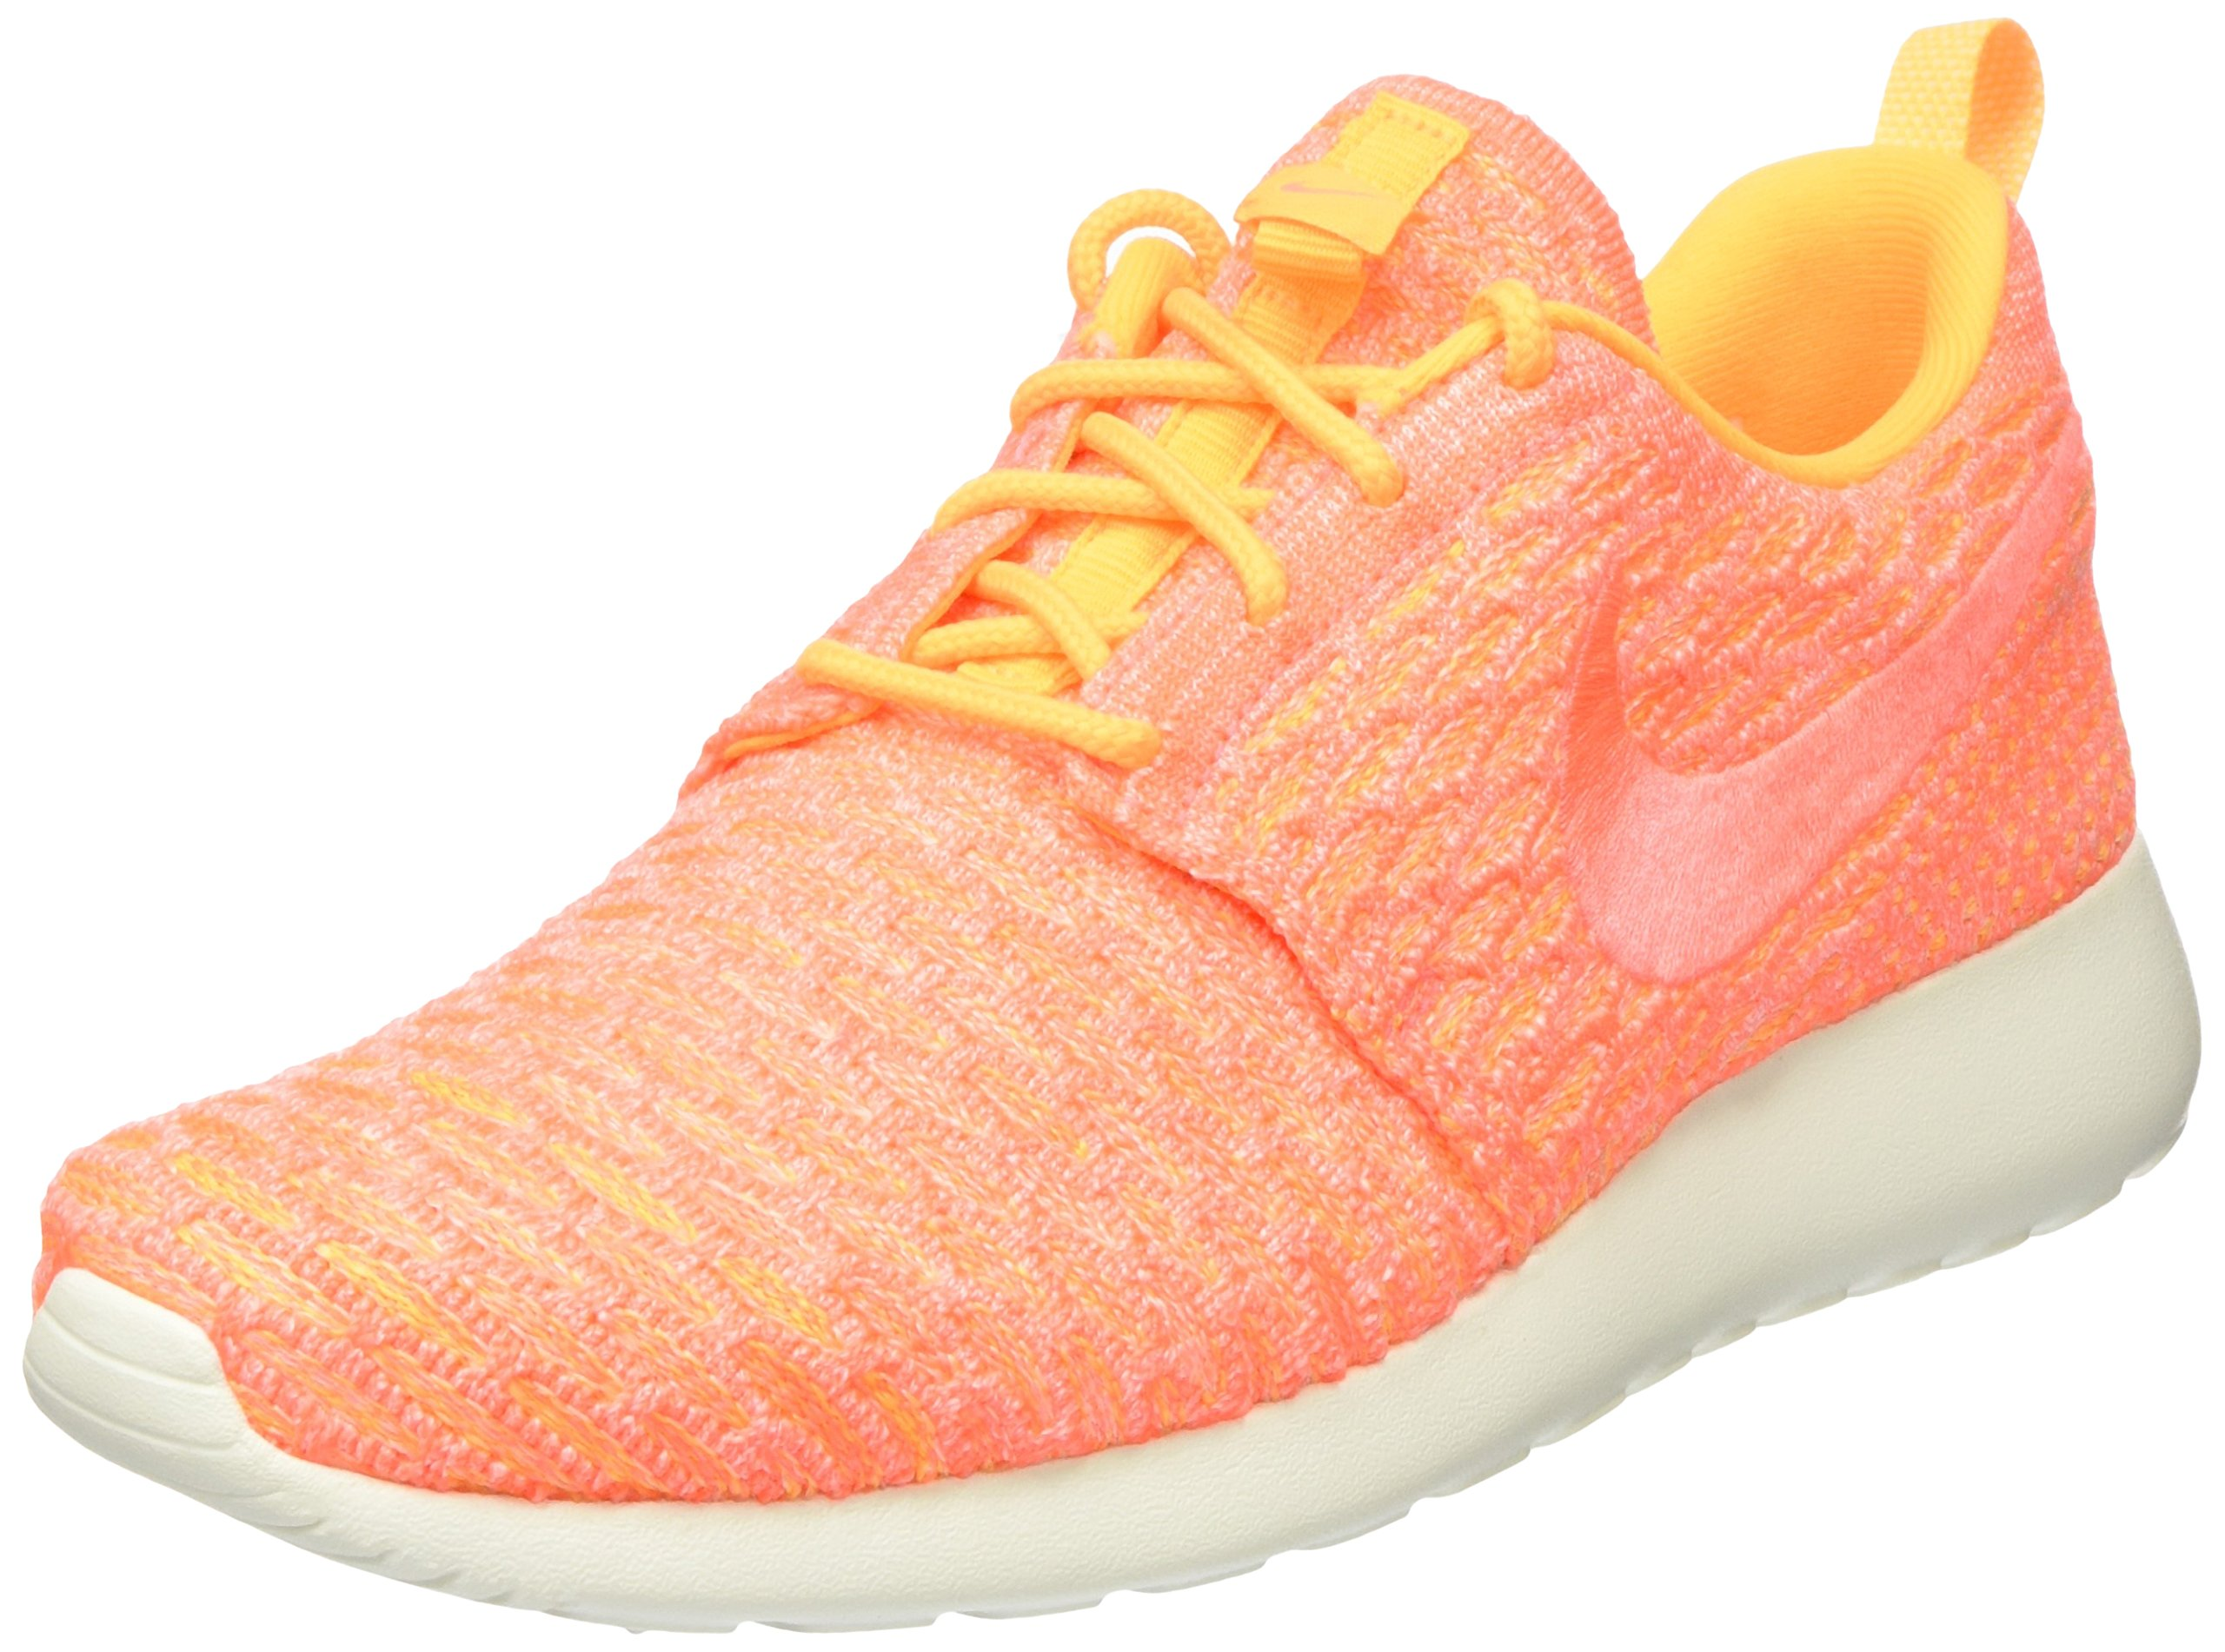 purchase cheap 7715e bfc80 Galleon - Nike Roshe One Flyknit, Women s Sneakers, Orange (Laser  Orange Bright Mango-sail), 5 UK (38.5 EU)